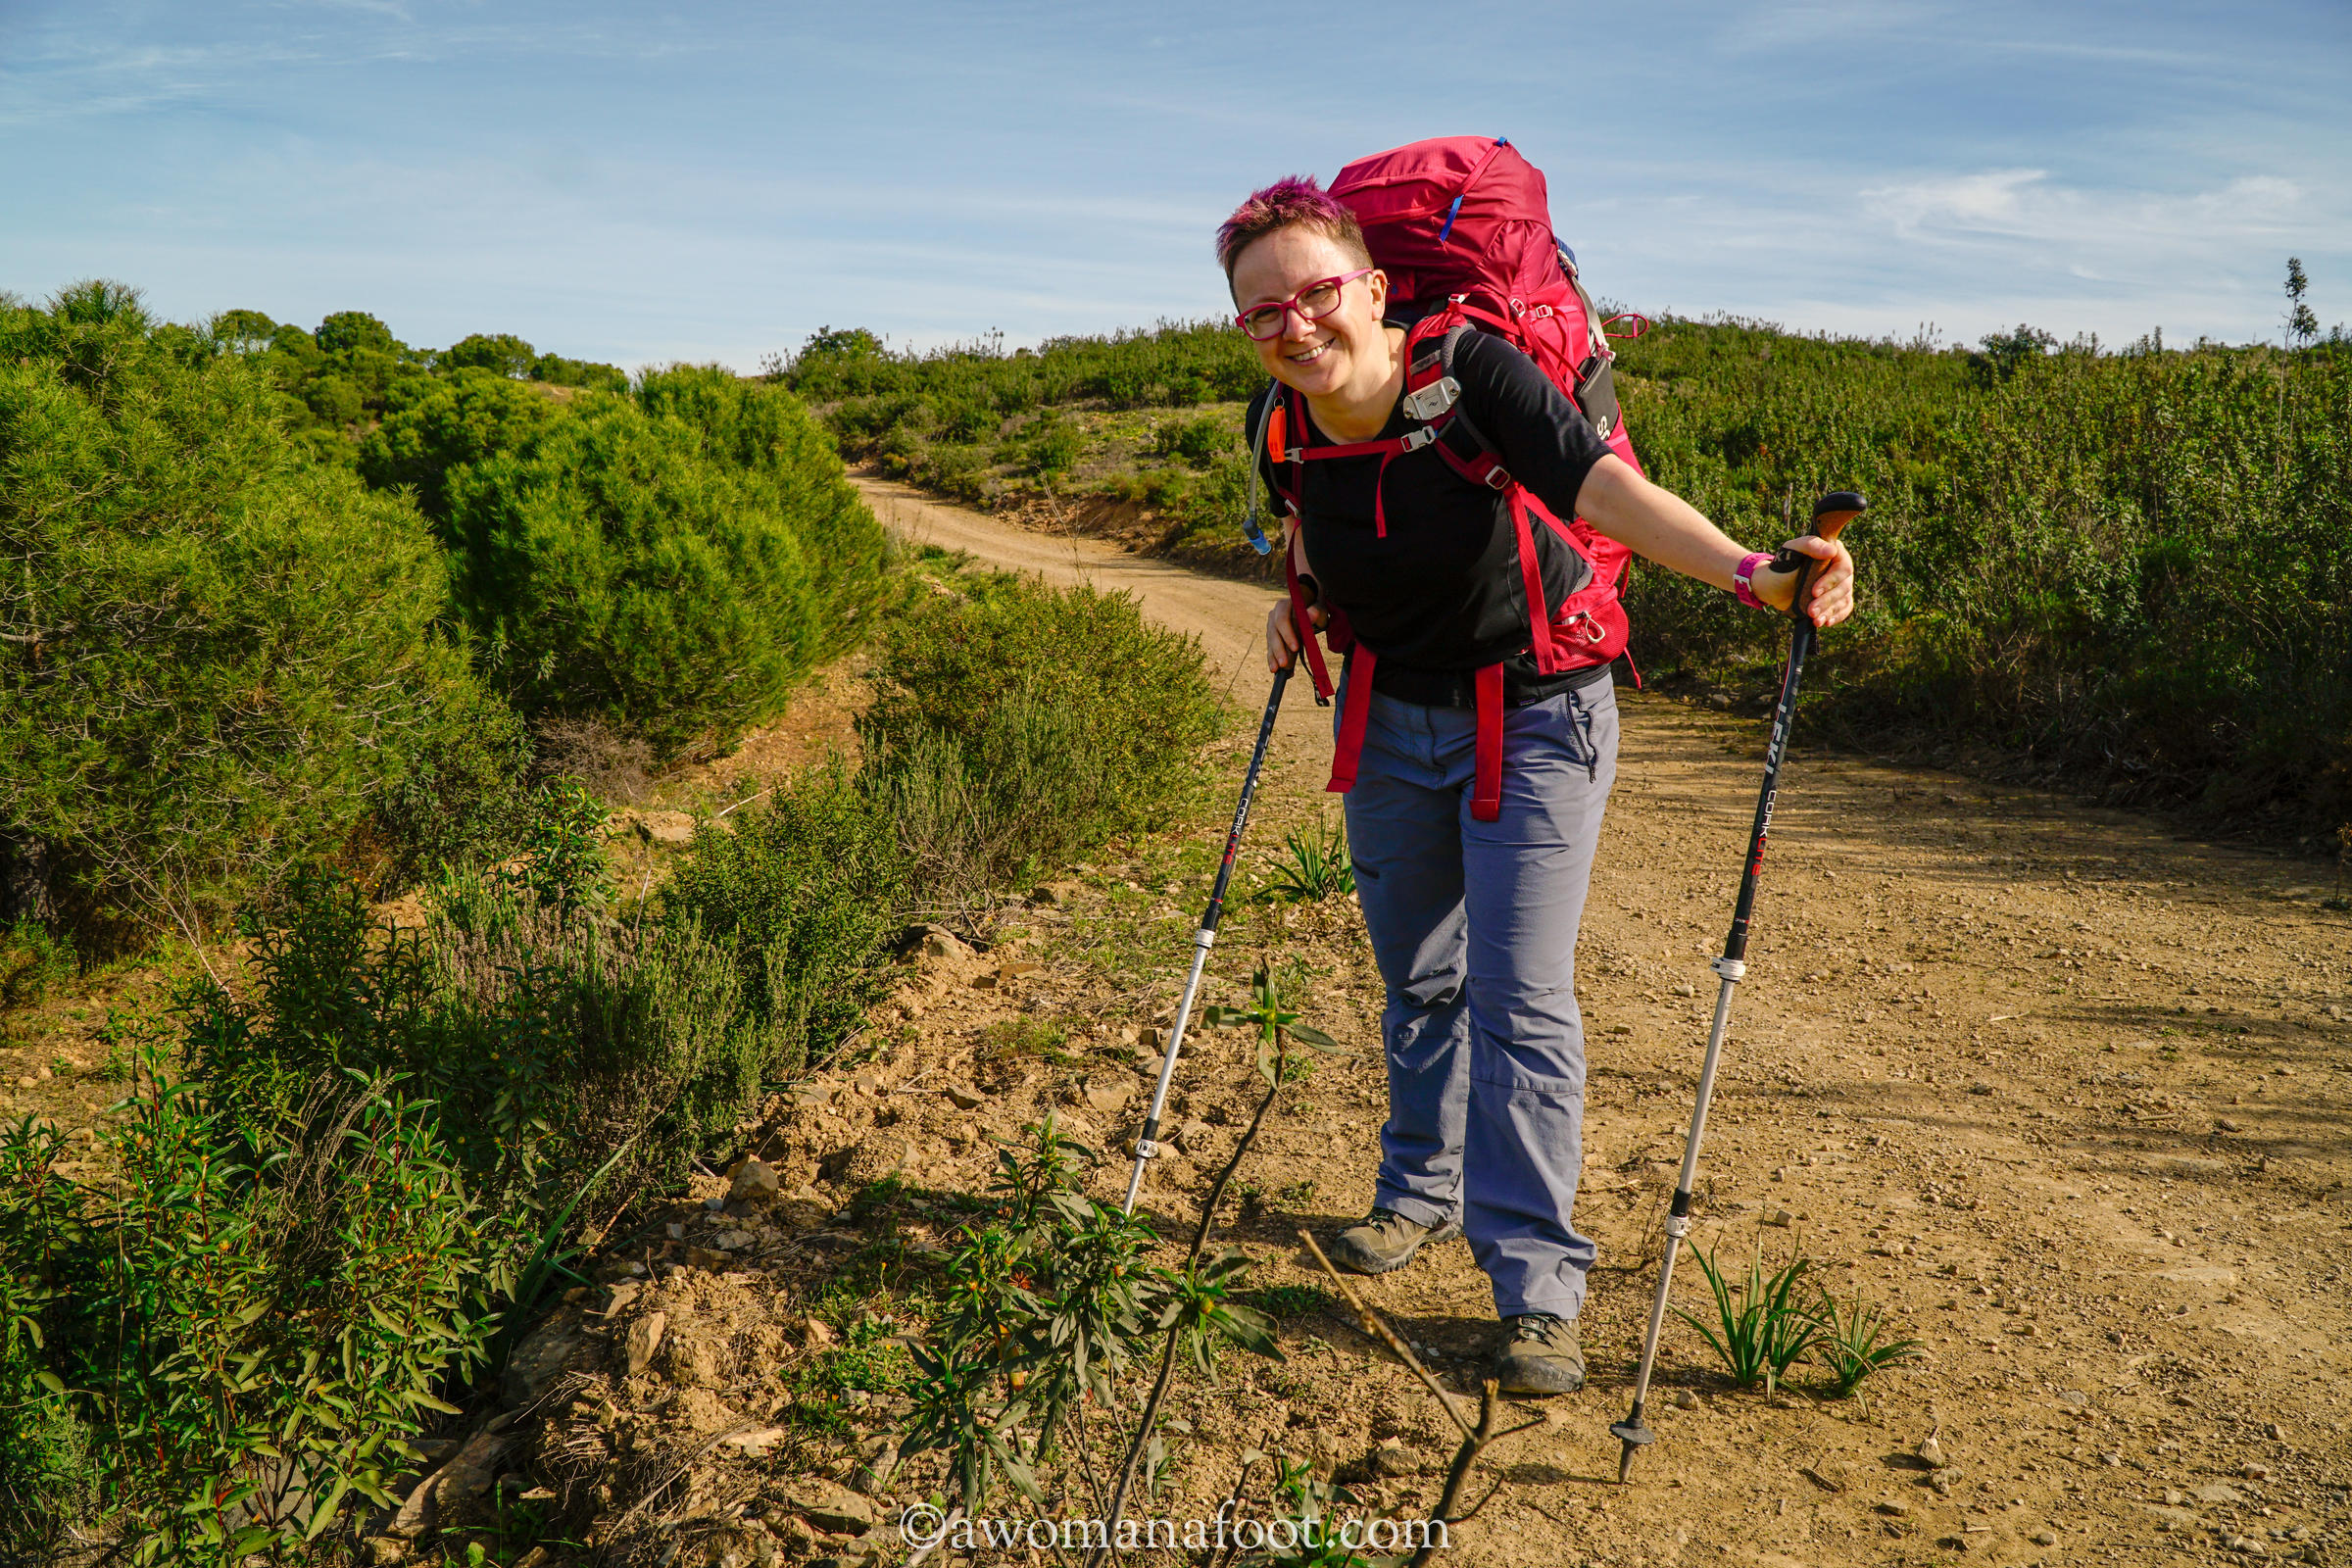 Spring is just the perfect season for hiking! Click to learn all you need to know to enjoy a safe and pleasant spring hike @awomanafoot.com! | Hiking advice | Hiking gear and equipment | What to wear hiking | Hiking clothes | Safe hiking in Spring | Hiking in bad weather | #Hiking #Gear #SpringHiking #HikingTips #HikingGear #Outdoors #HikingAdvice